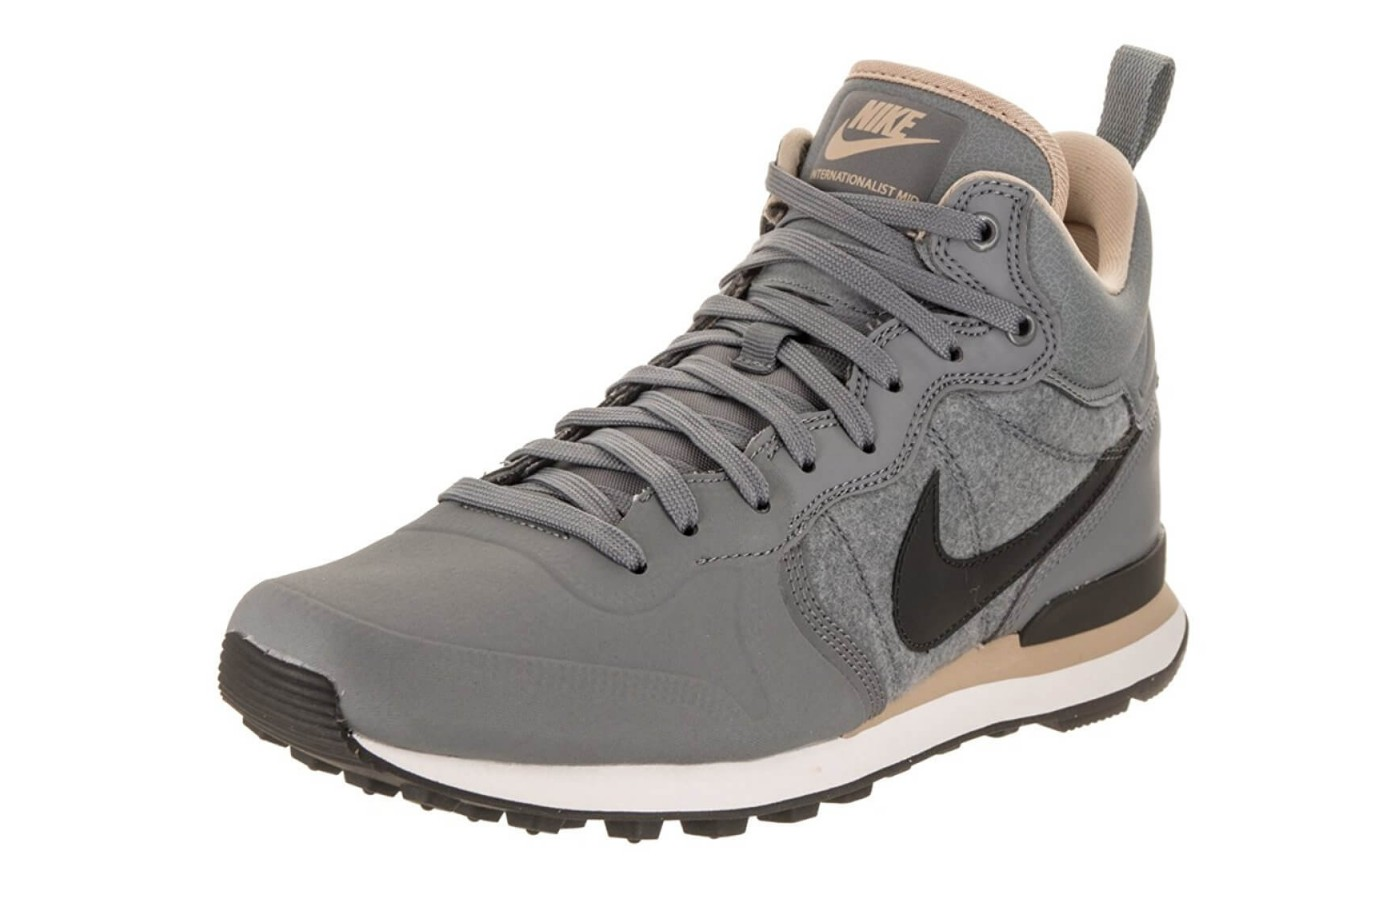 The Nike Internationalist Utility features a water-resistant upper